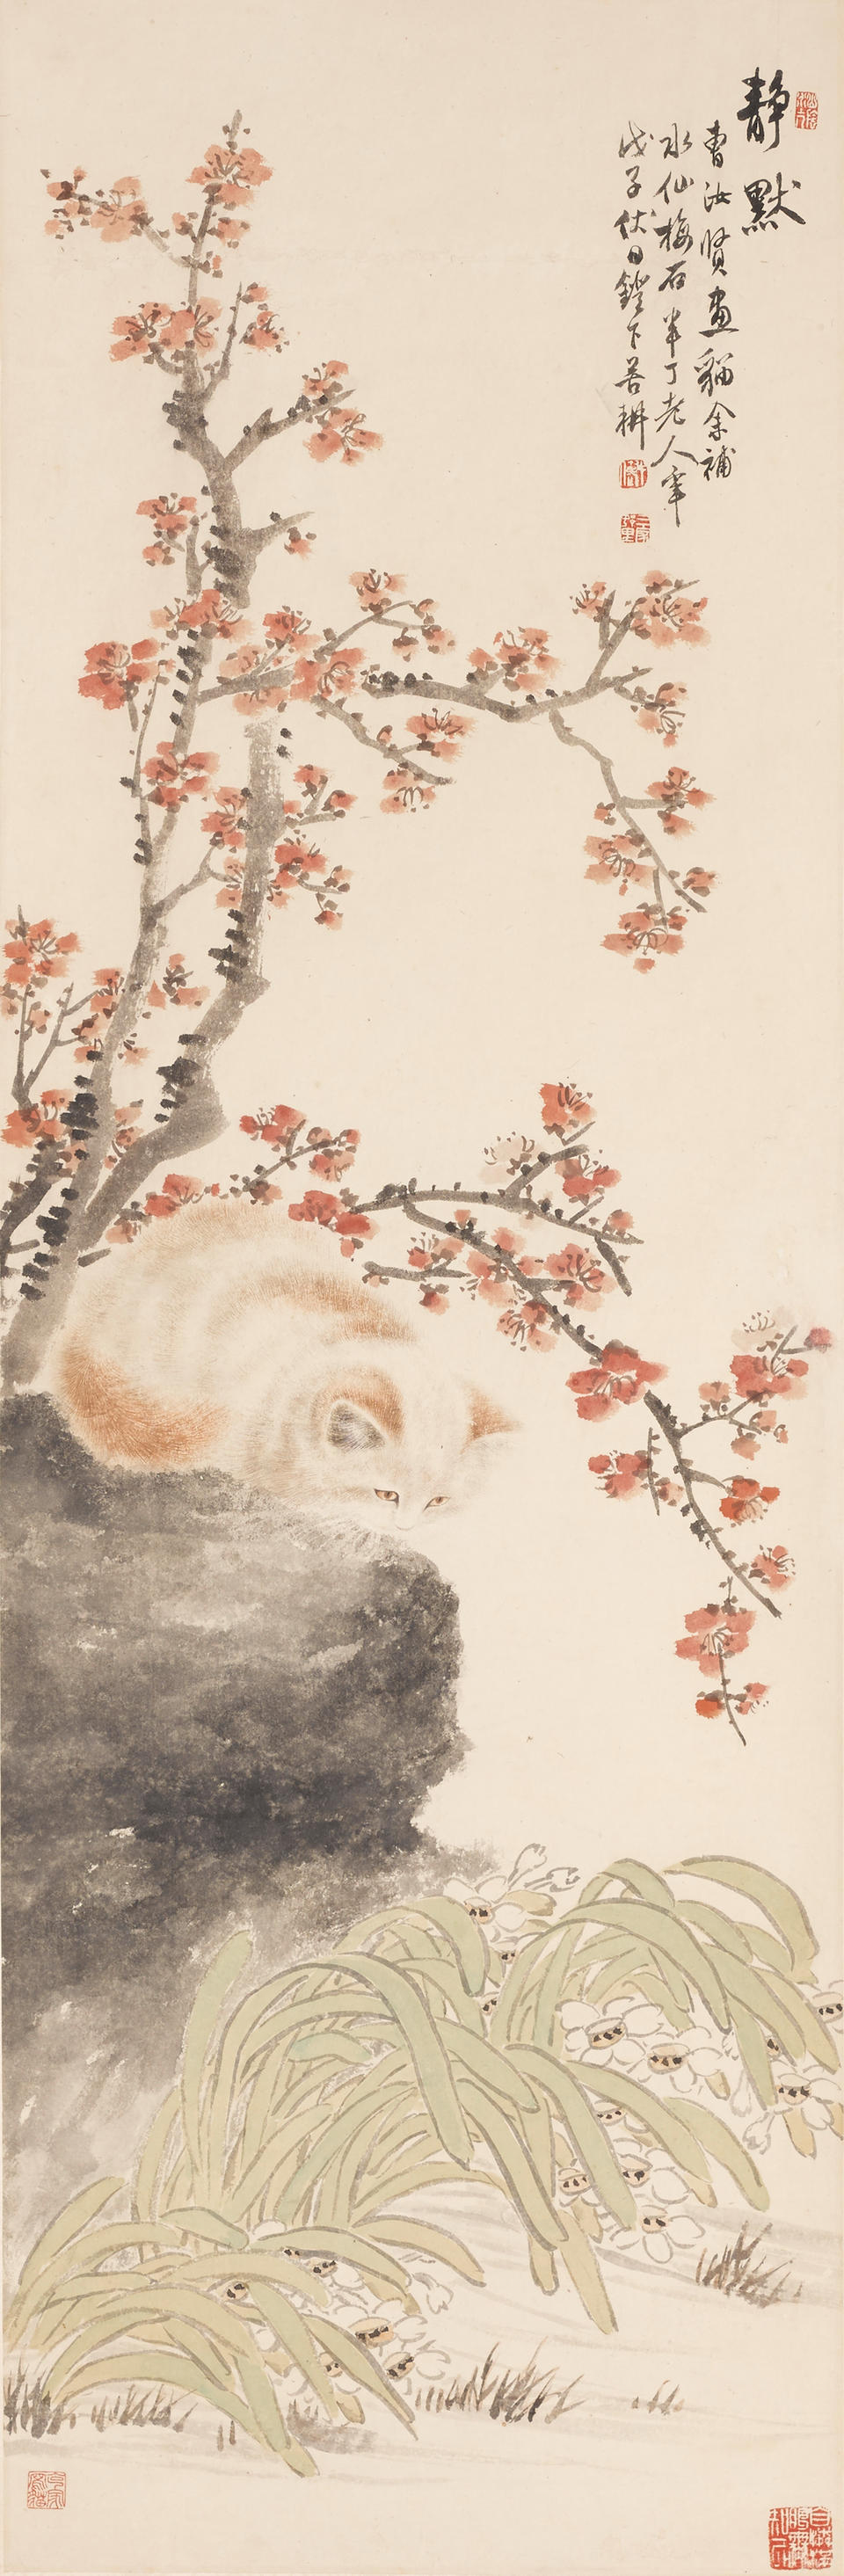 Cao Kejia (1906-1979) and Chen Banding (1876-1970) Cats and Flowers, 1948